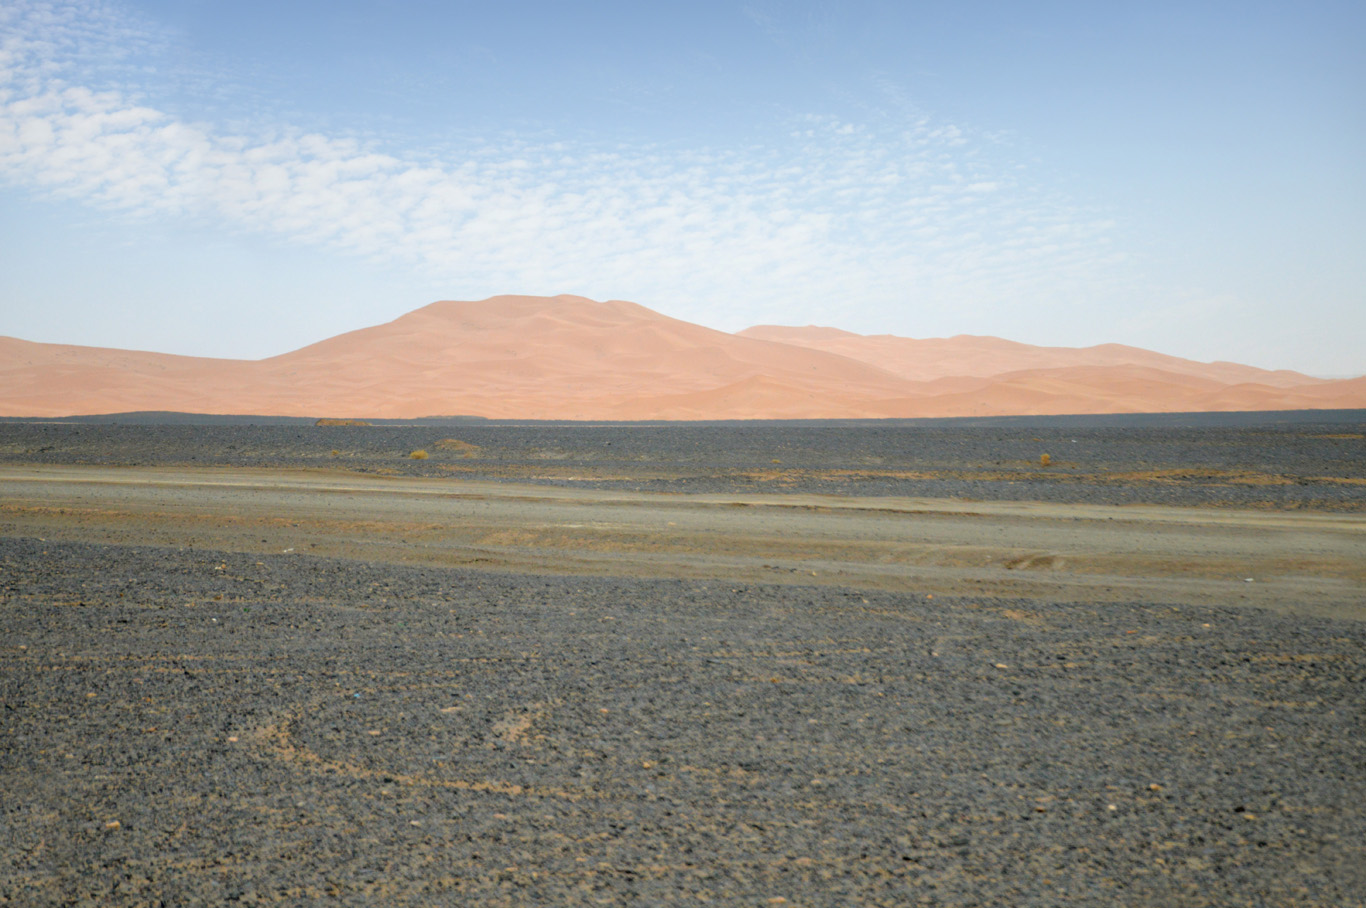 Moon-like, barren landscapes and dunes emerging on the horizon